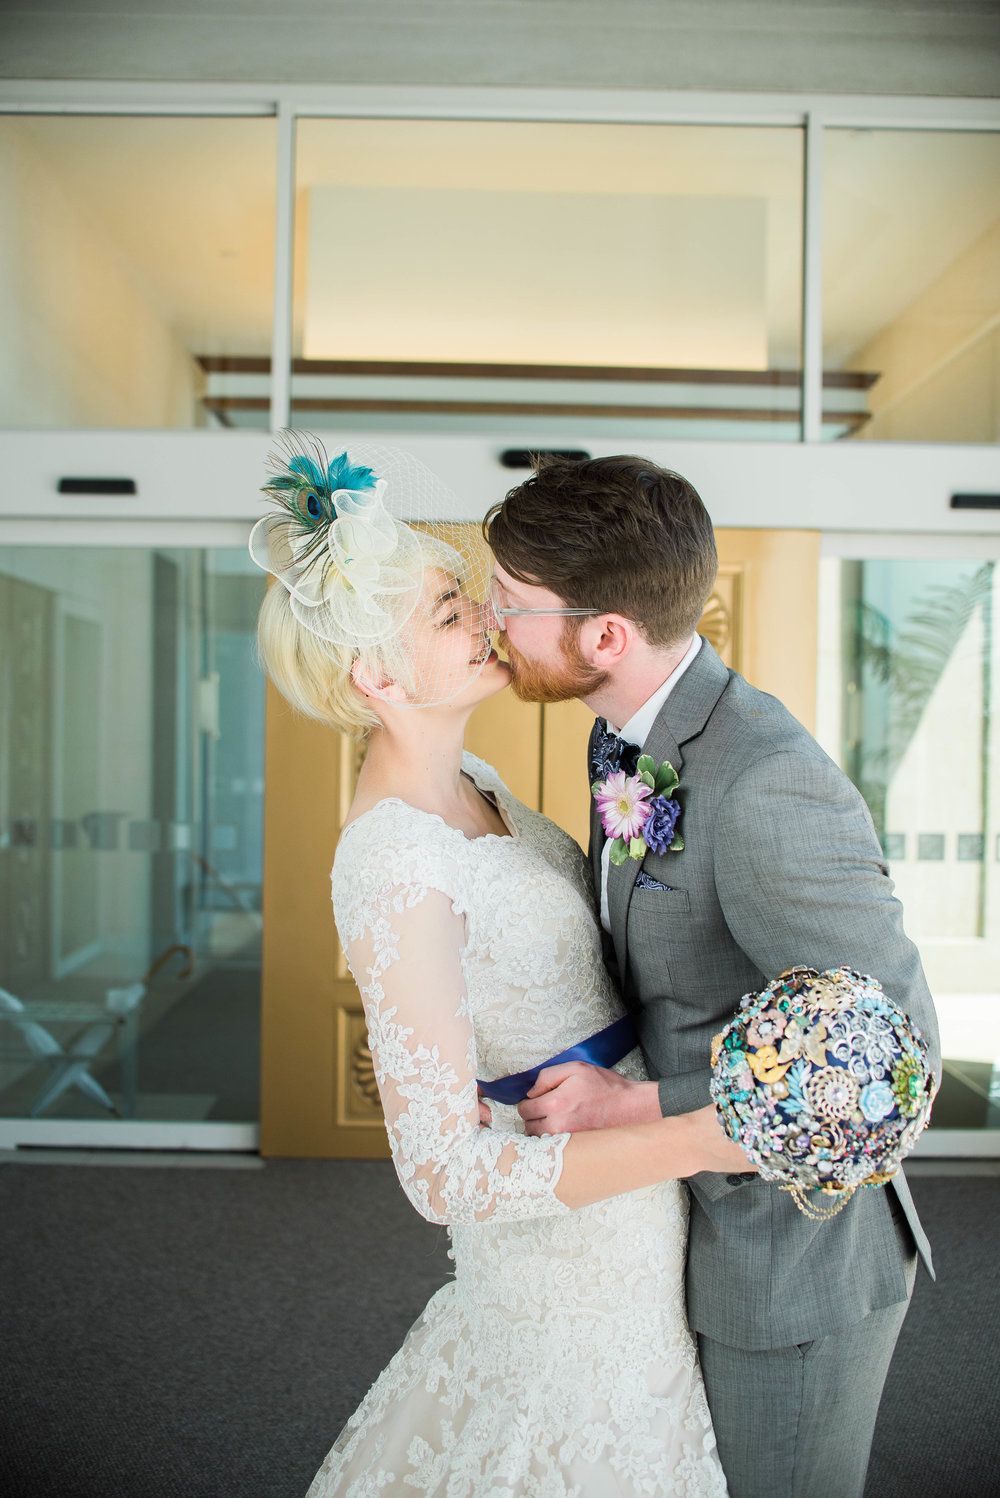 K+M-Wedding-DaySadie_Banks_Photography-618.jpg